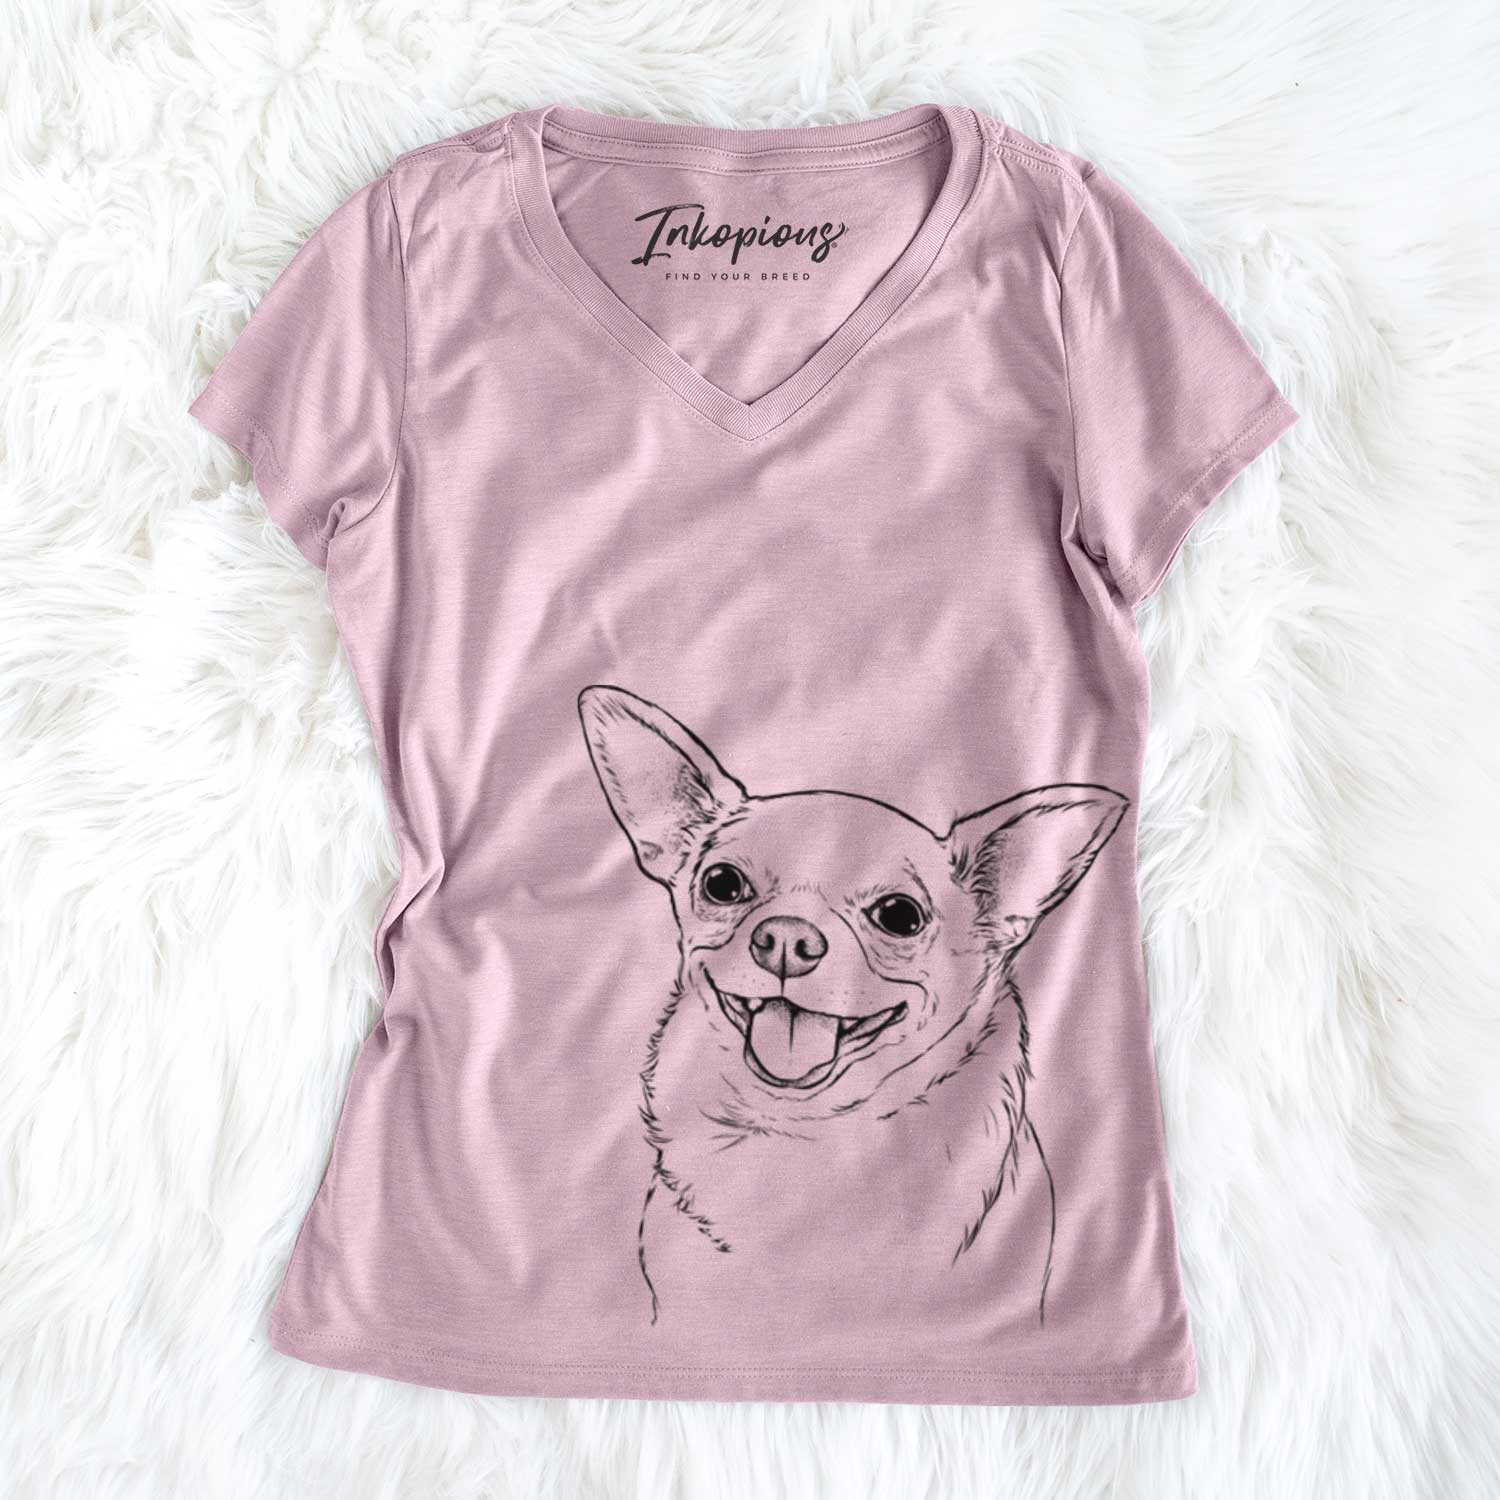 Maddison Pearl the Chihuahua - Women's Perfect V-neck Shirt